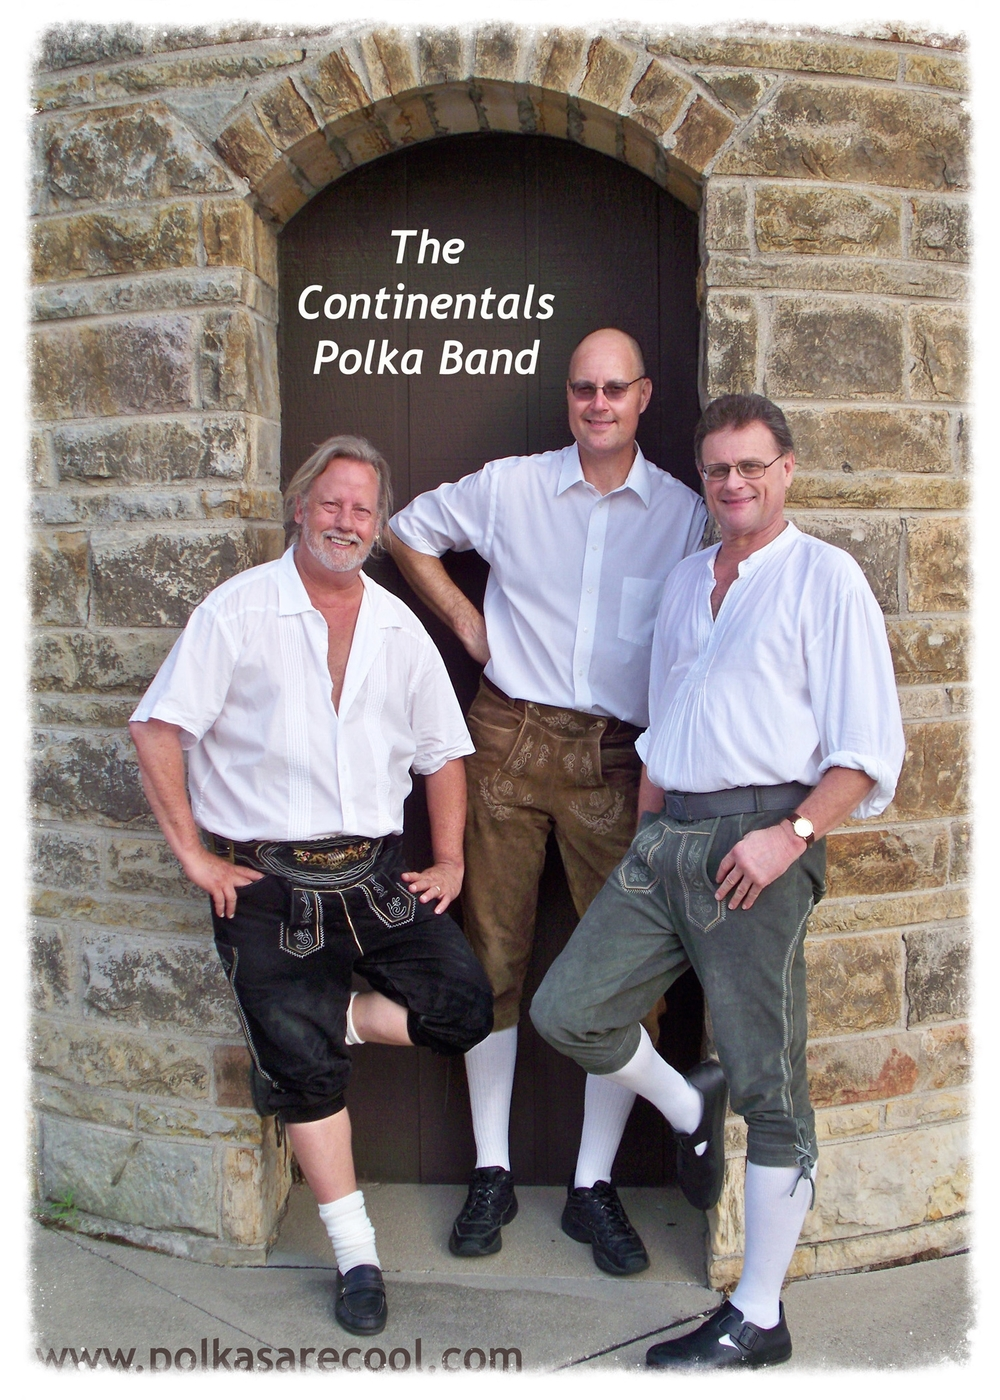 The Continentals